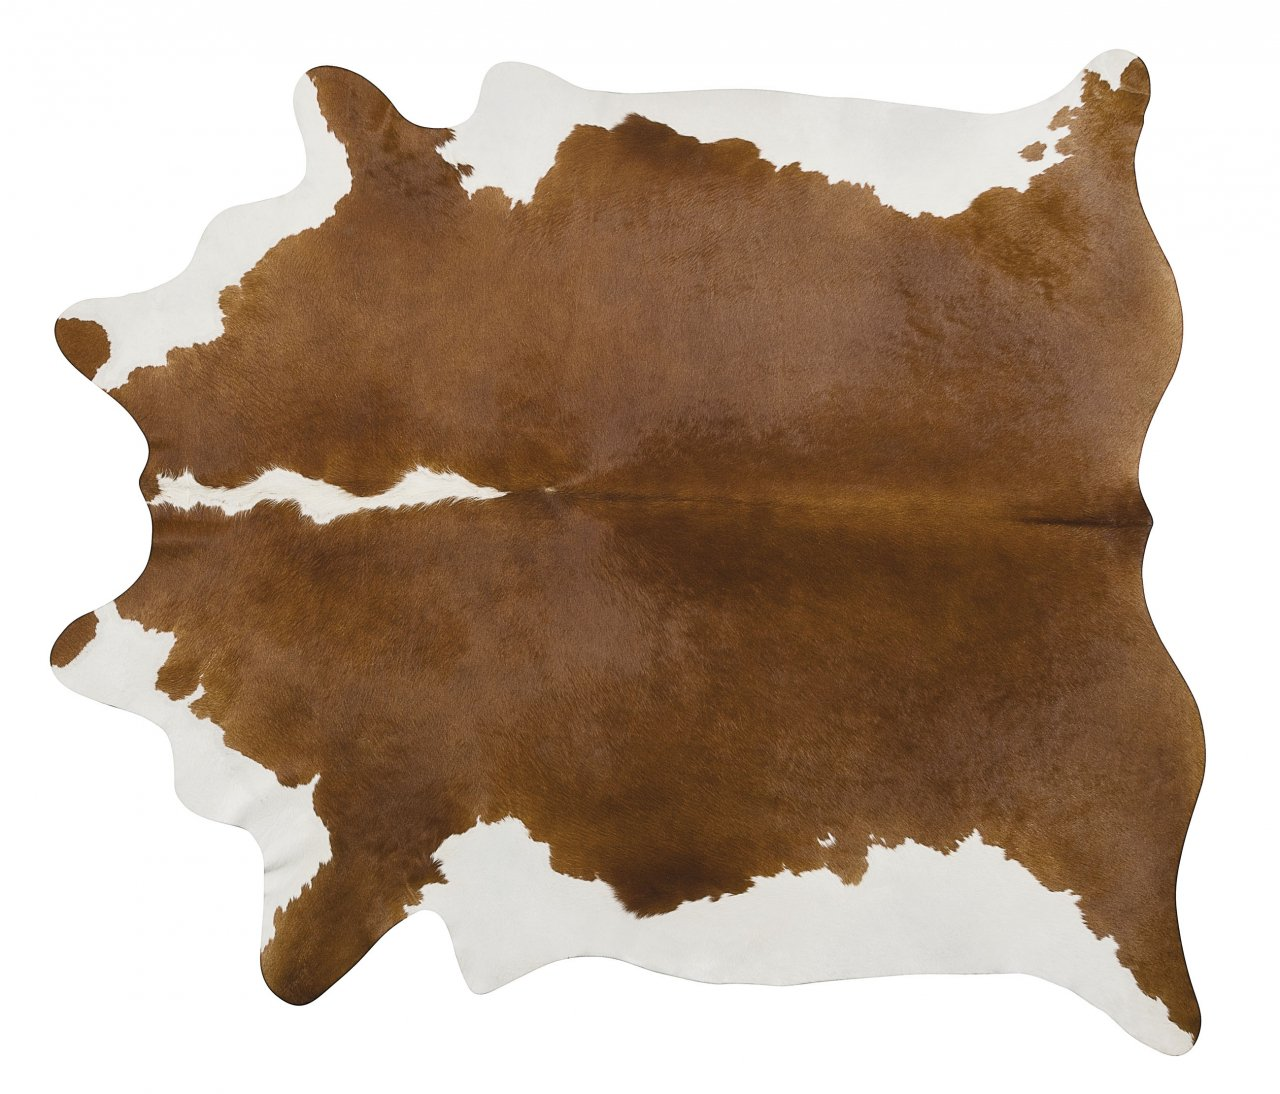 Hereford Brazilian Cowhide Rug Cow Hide Area Rugs - Size XXL